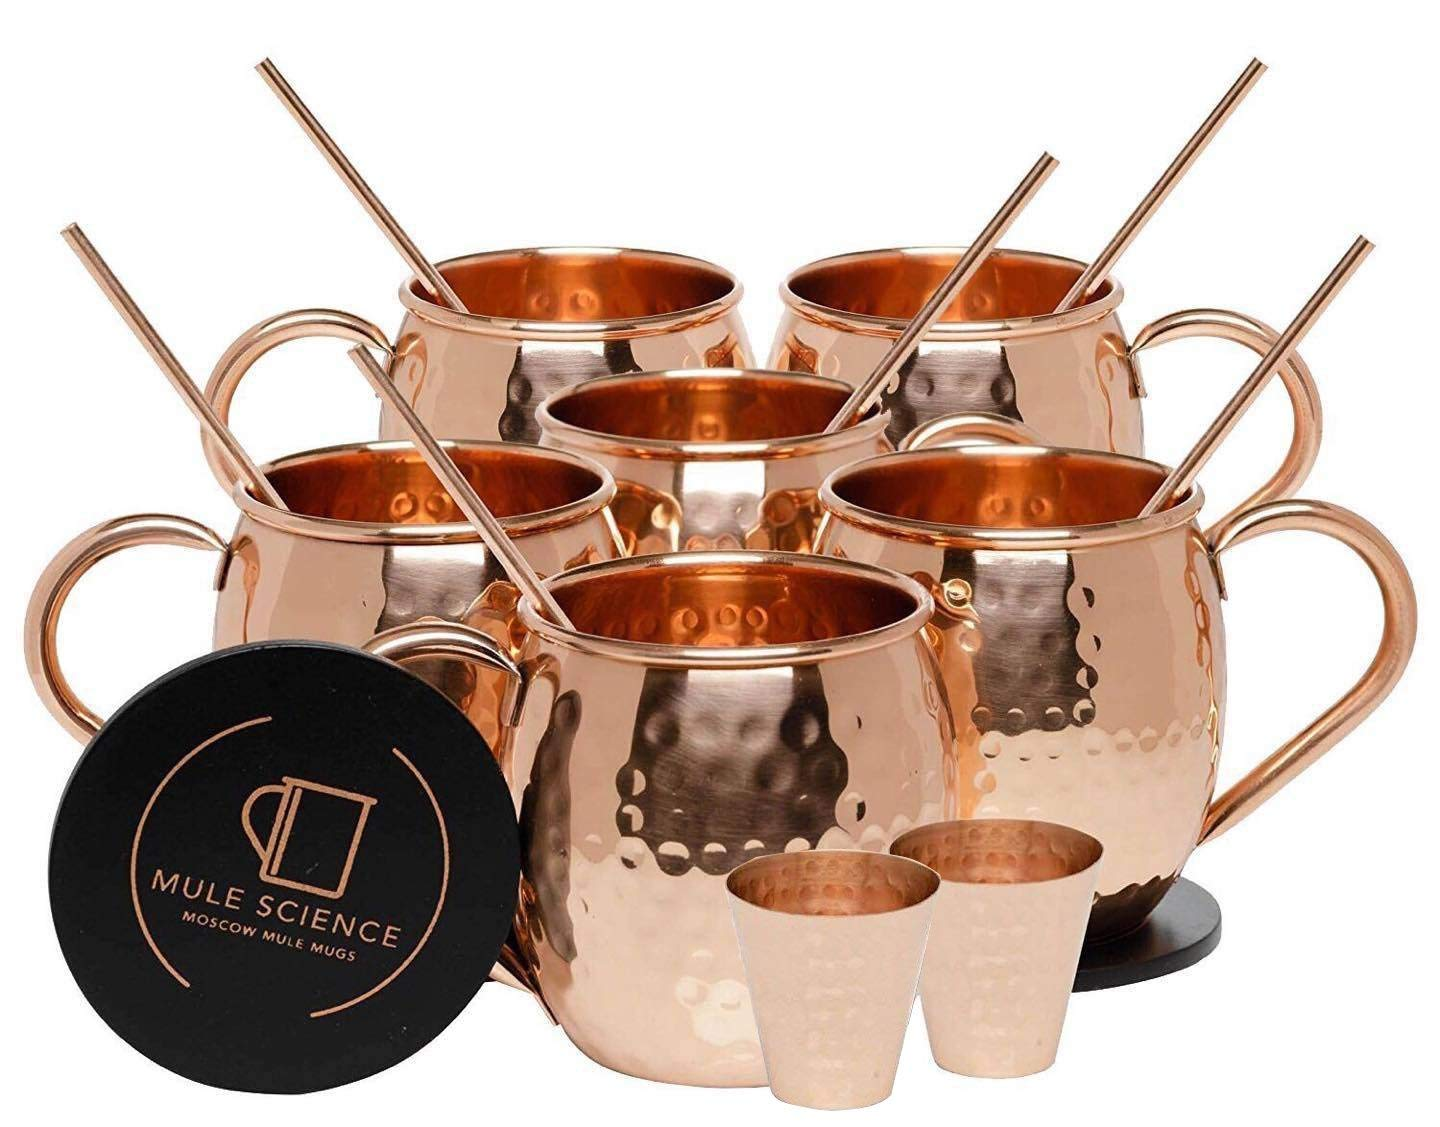 Deco 89 CO001 18 Ounce Drinking Mug, Set of 4 Moscow Mule Hammered Copper by Deco 89 (Image #1)